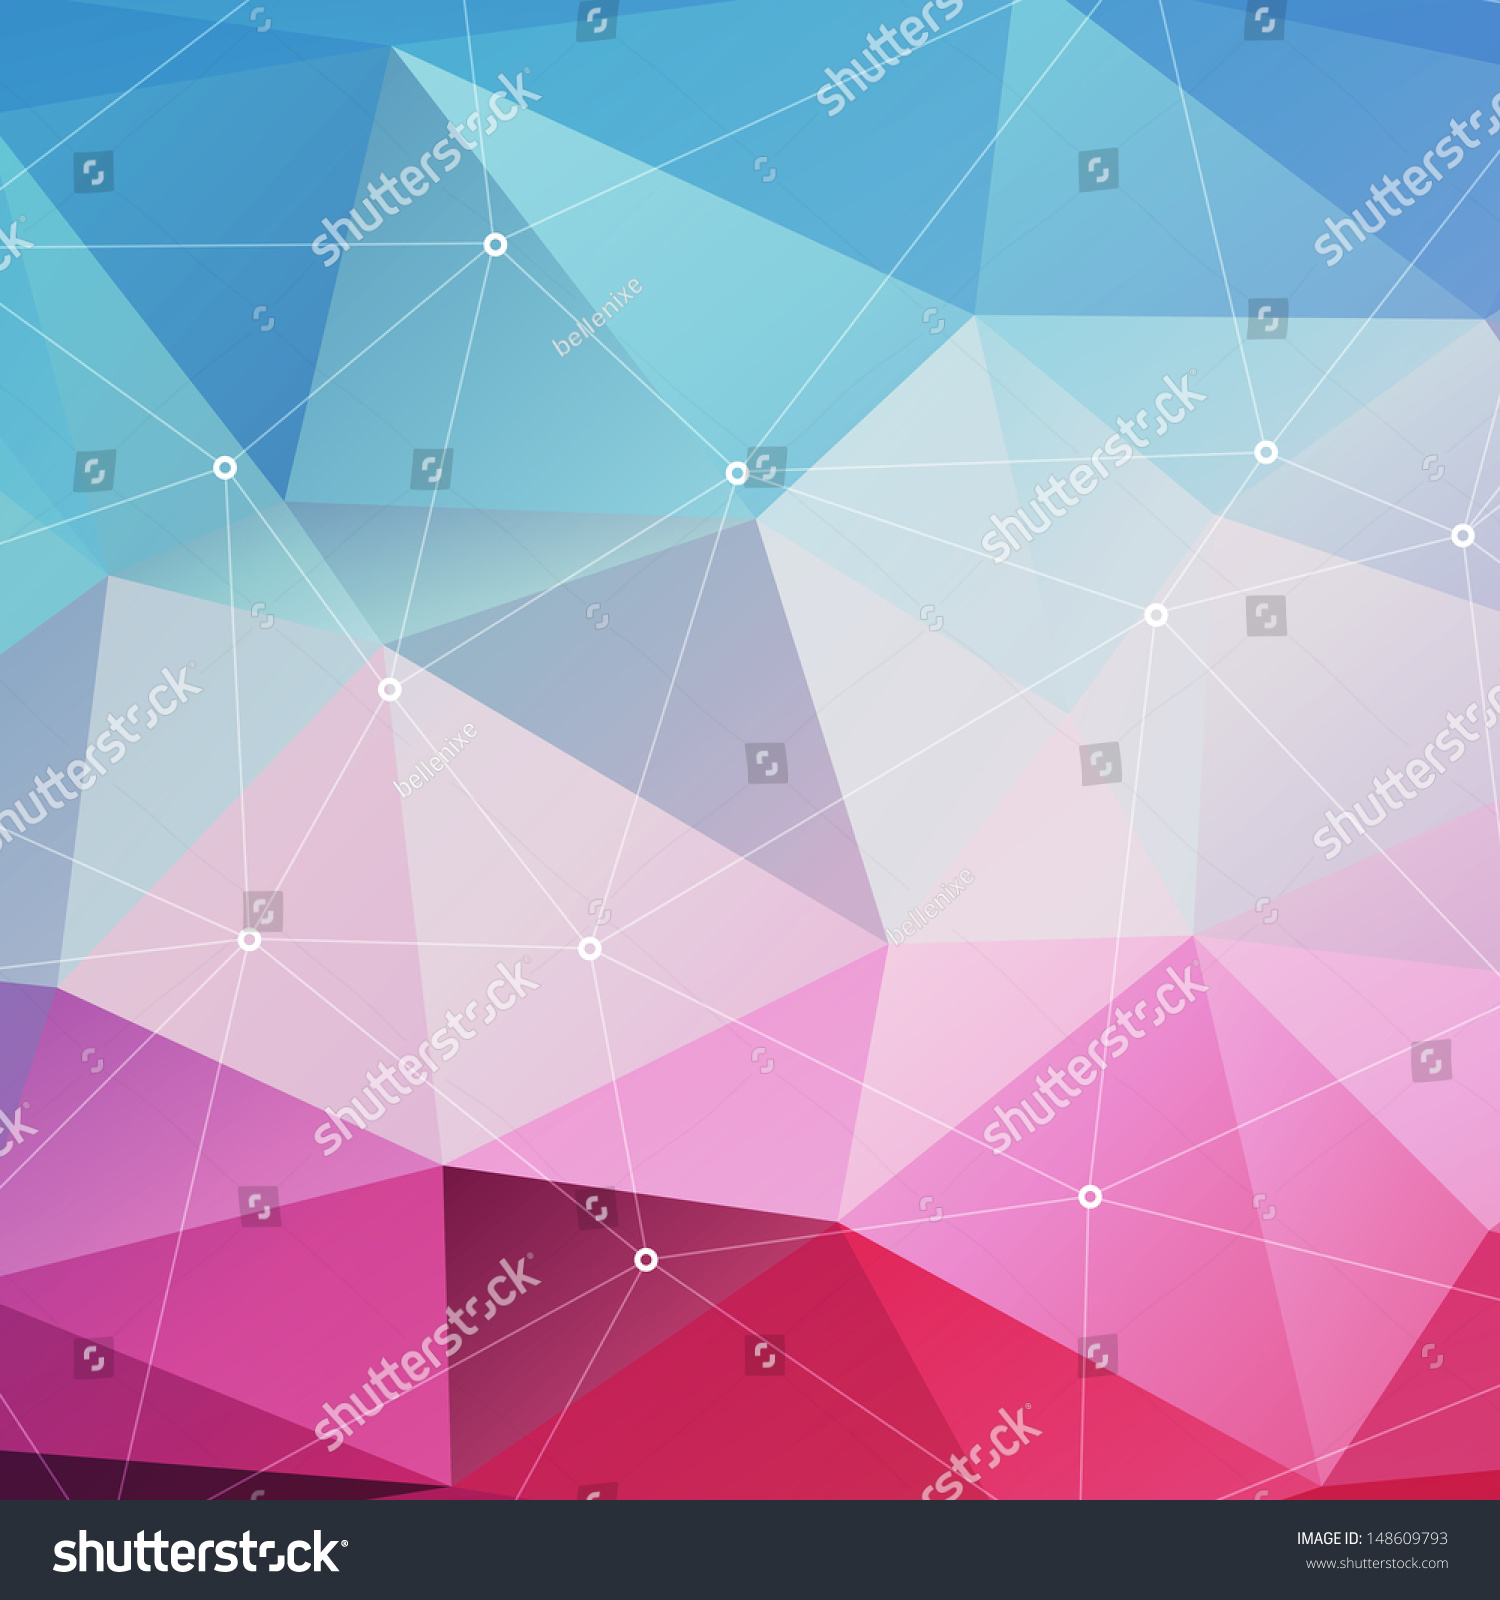 stock vector geometric background - photo #4